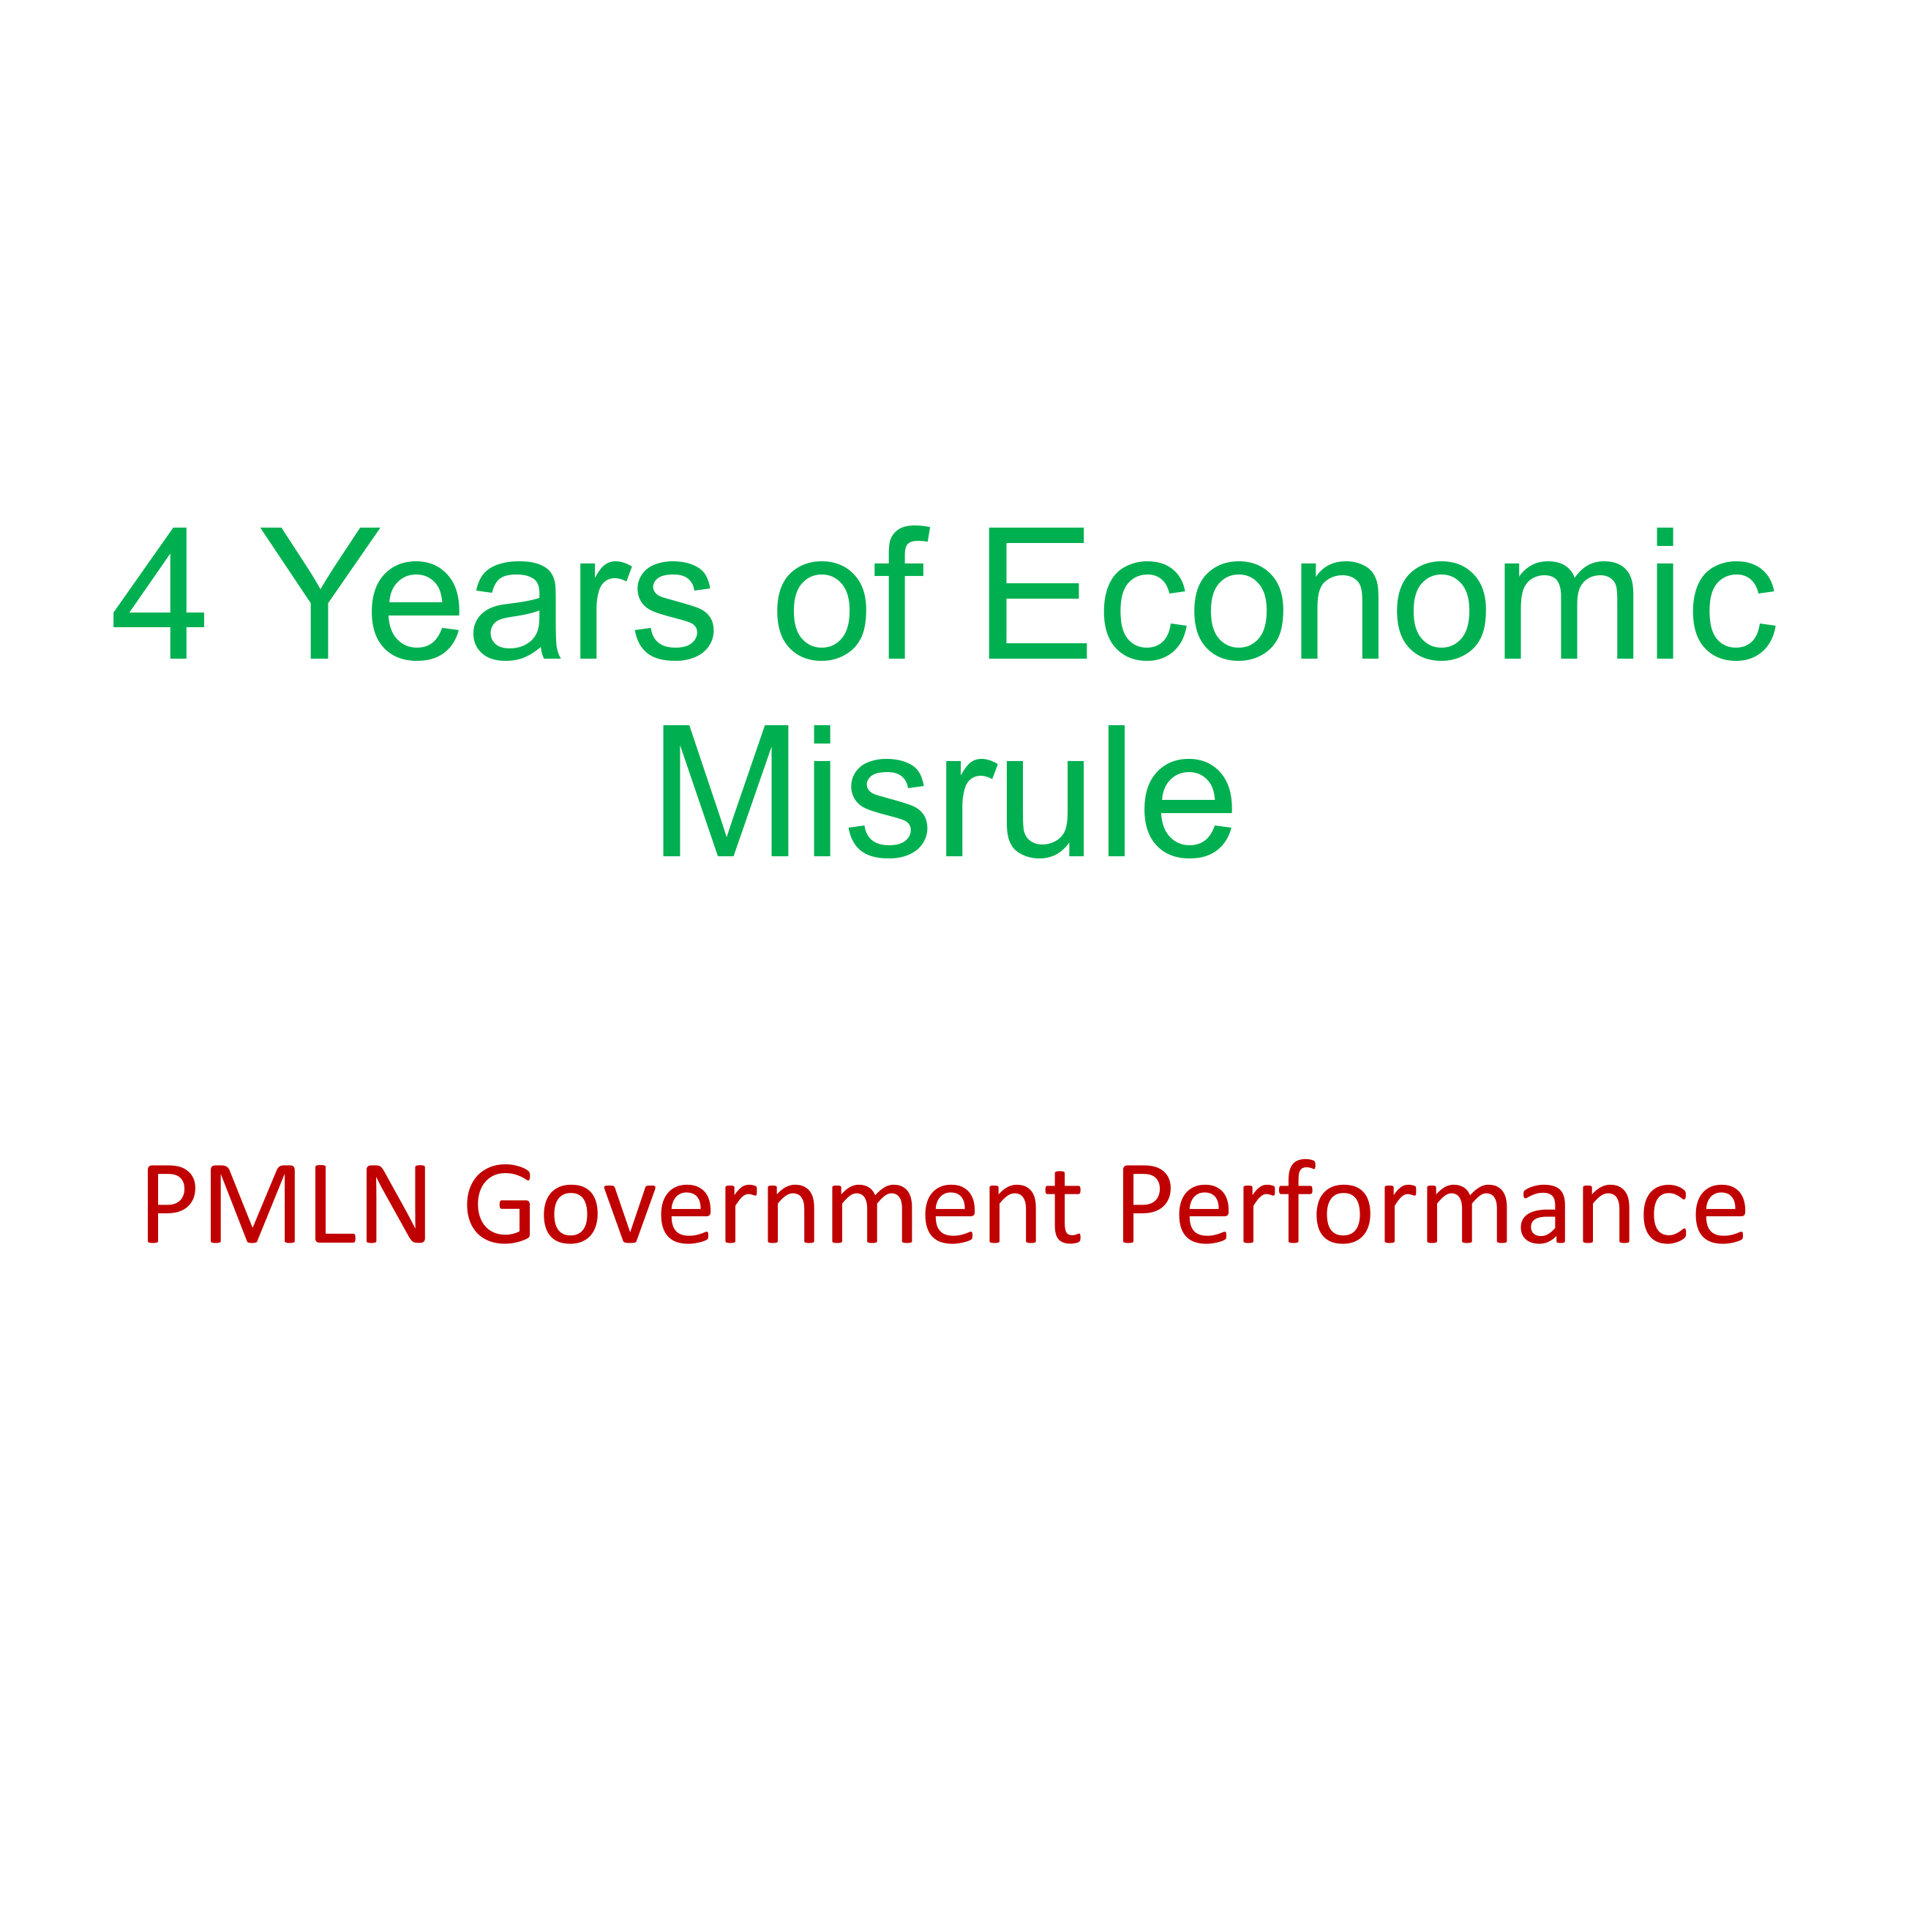 4 Years of Economic Misrule of PMLN Government Performance